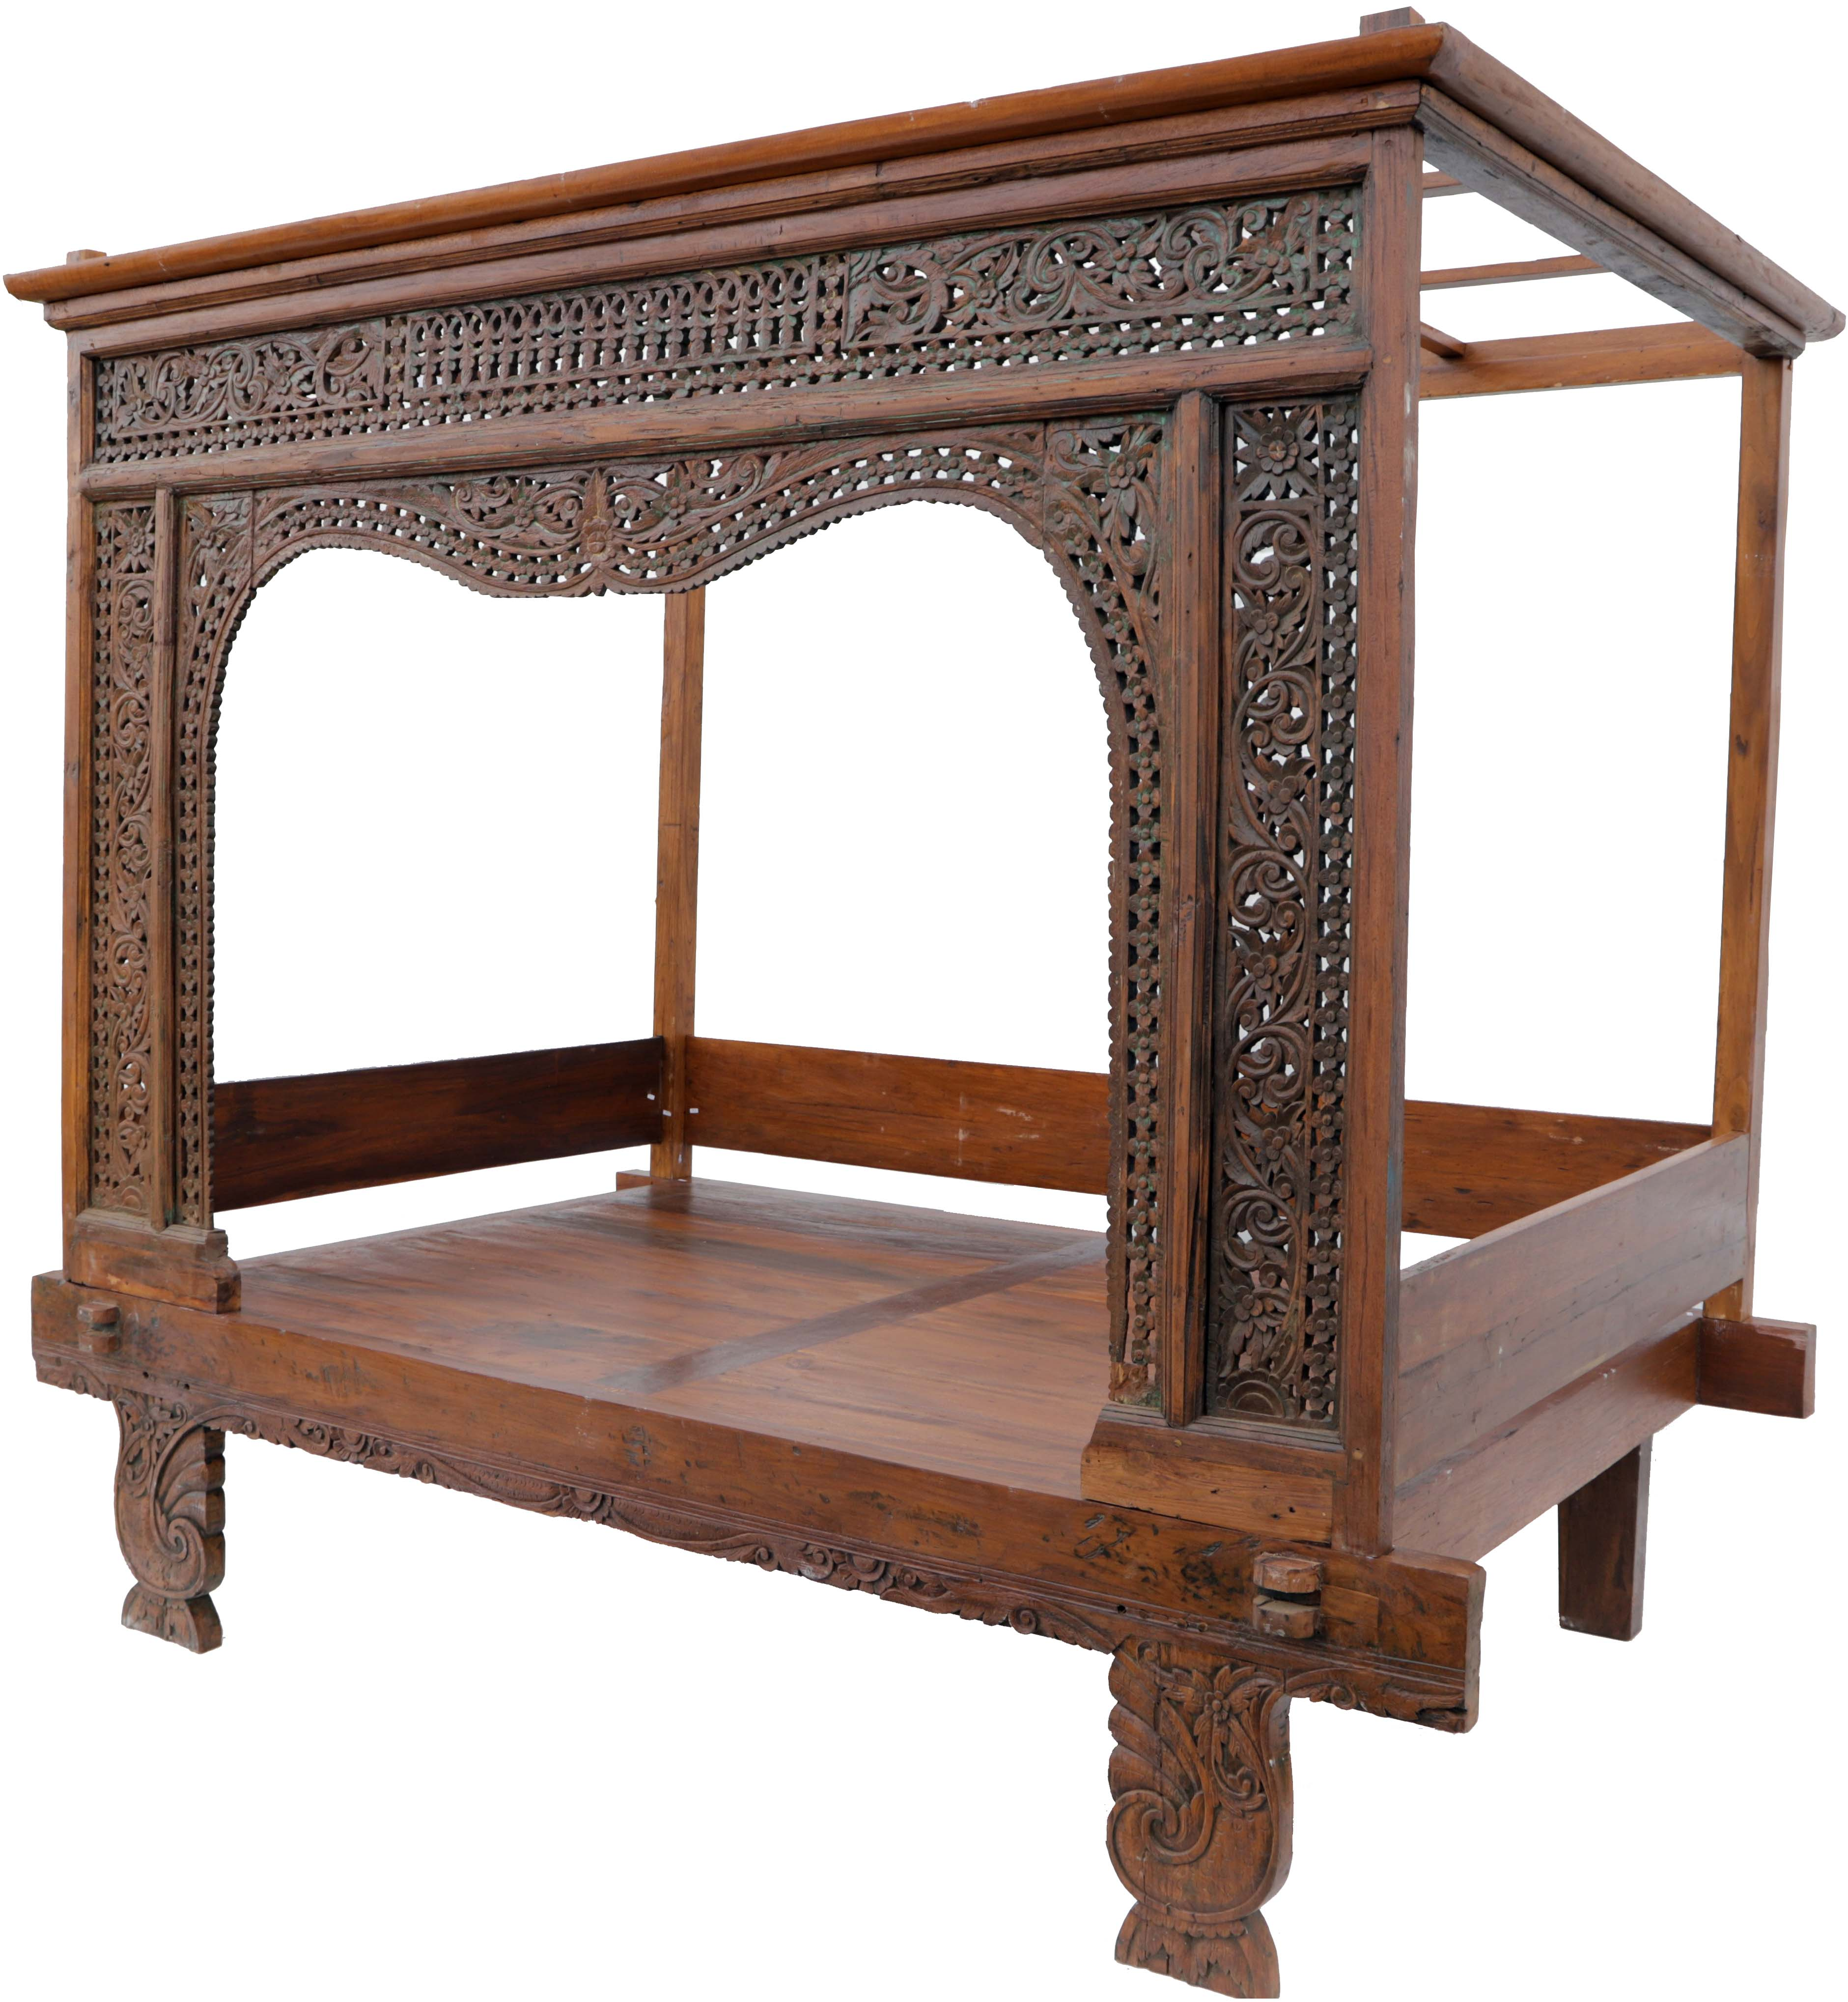 - Historic Four-poster Bed, Teak Daybed - Model 8 - 203x228x150 Cm